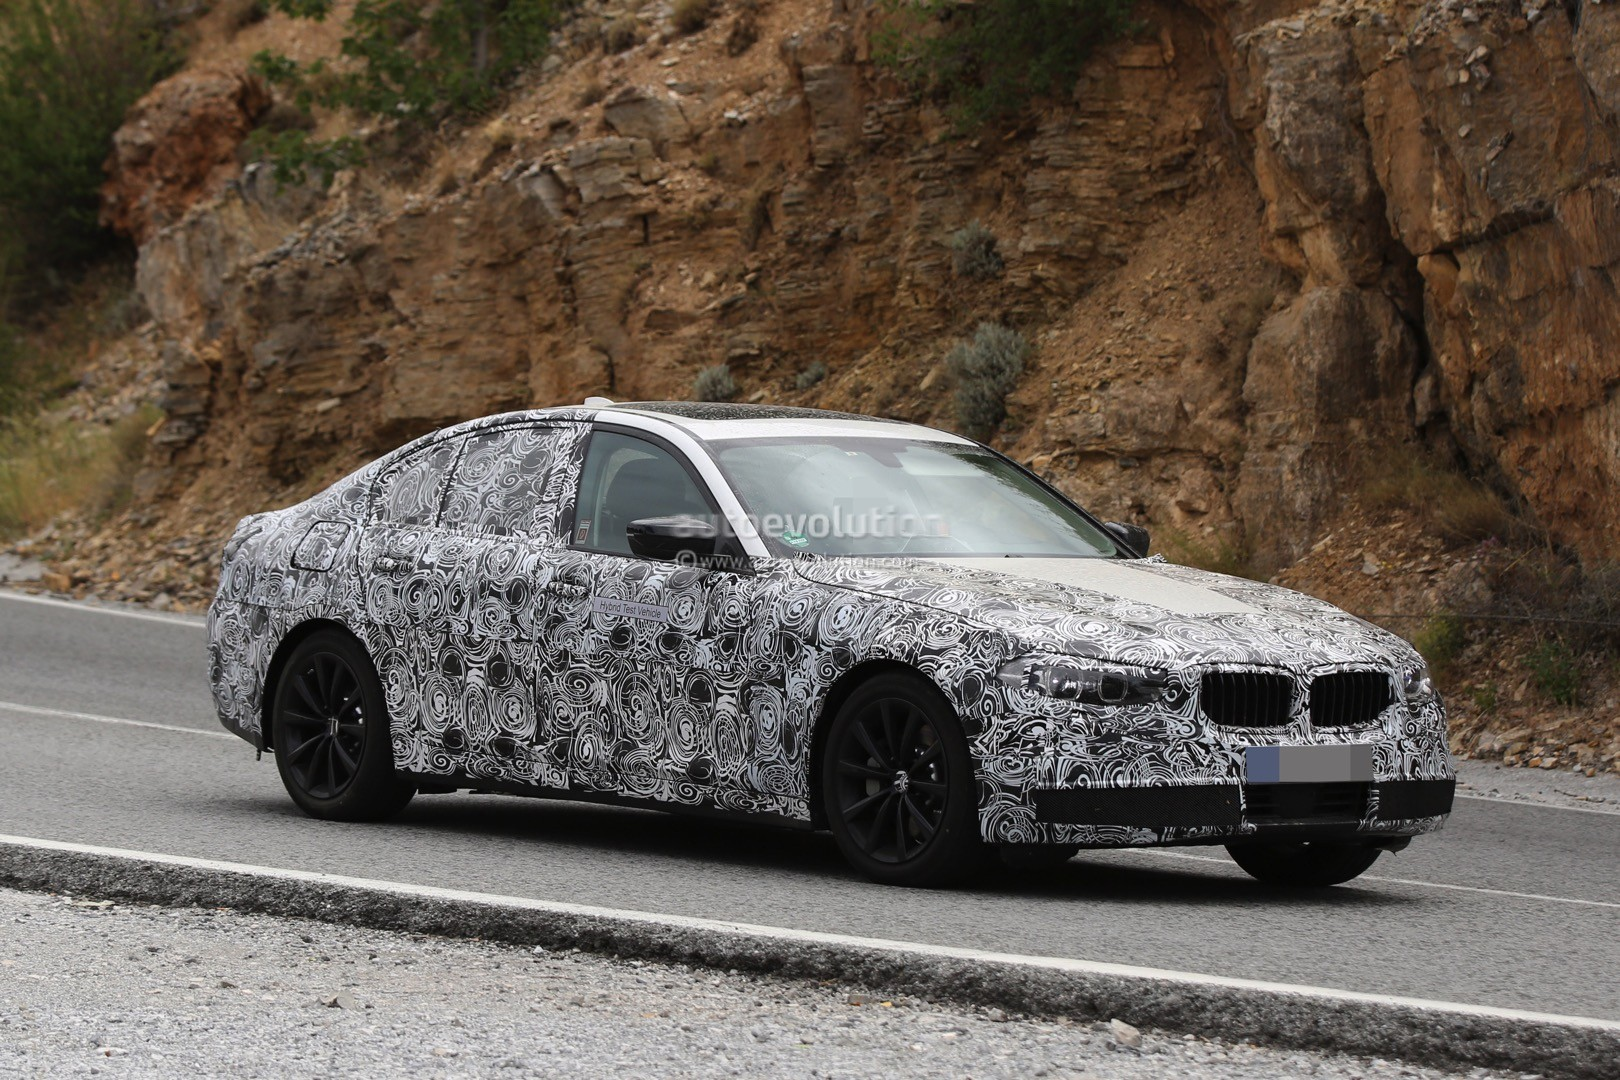 2017 BMW G30 5 Series Spied Closer, Prototype Interior Hints at 7